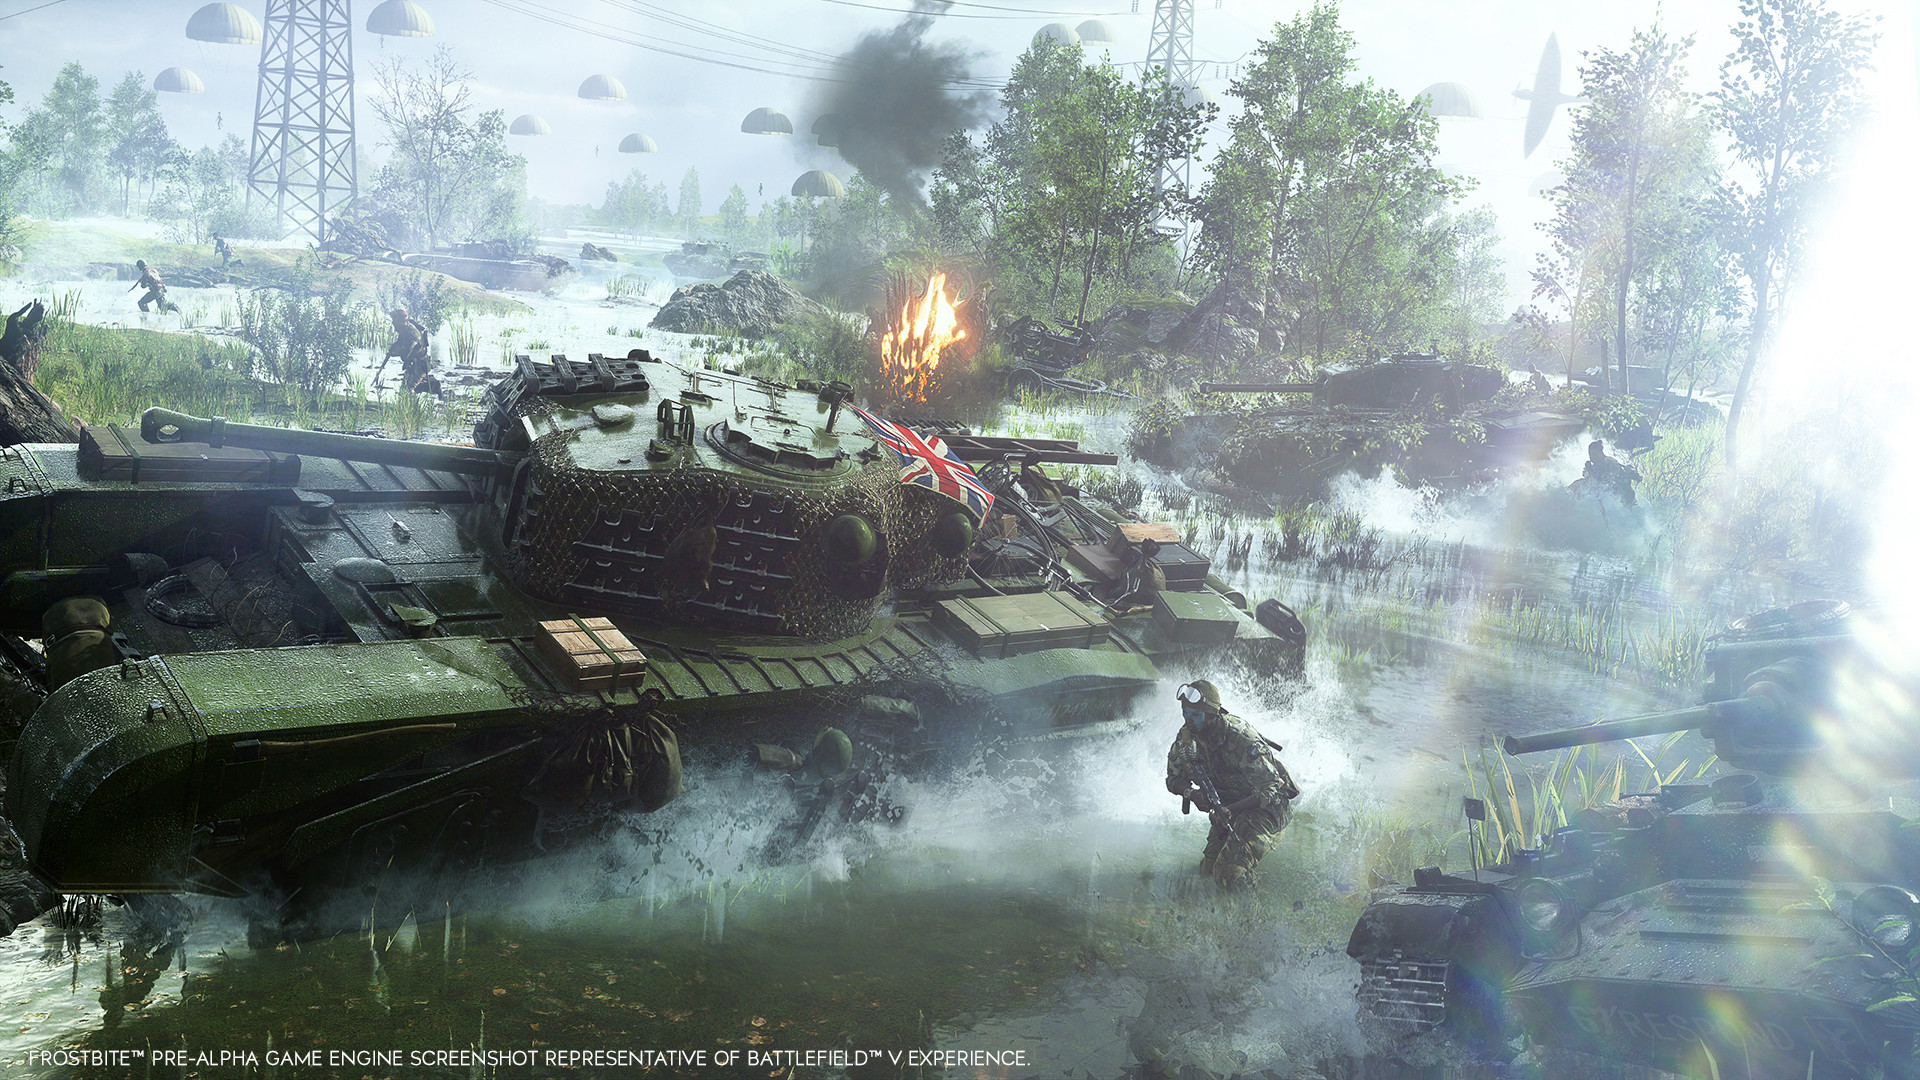 Battlefield 5 takes players to the unseen locations of WWII